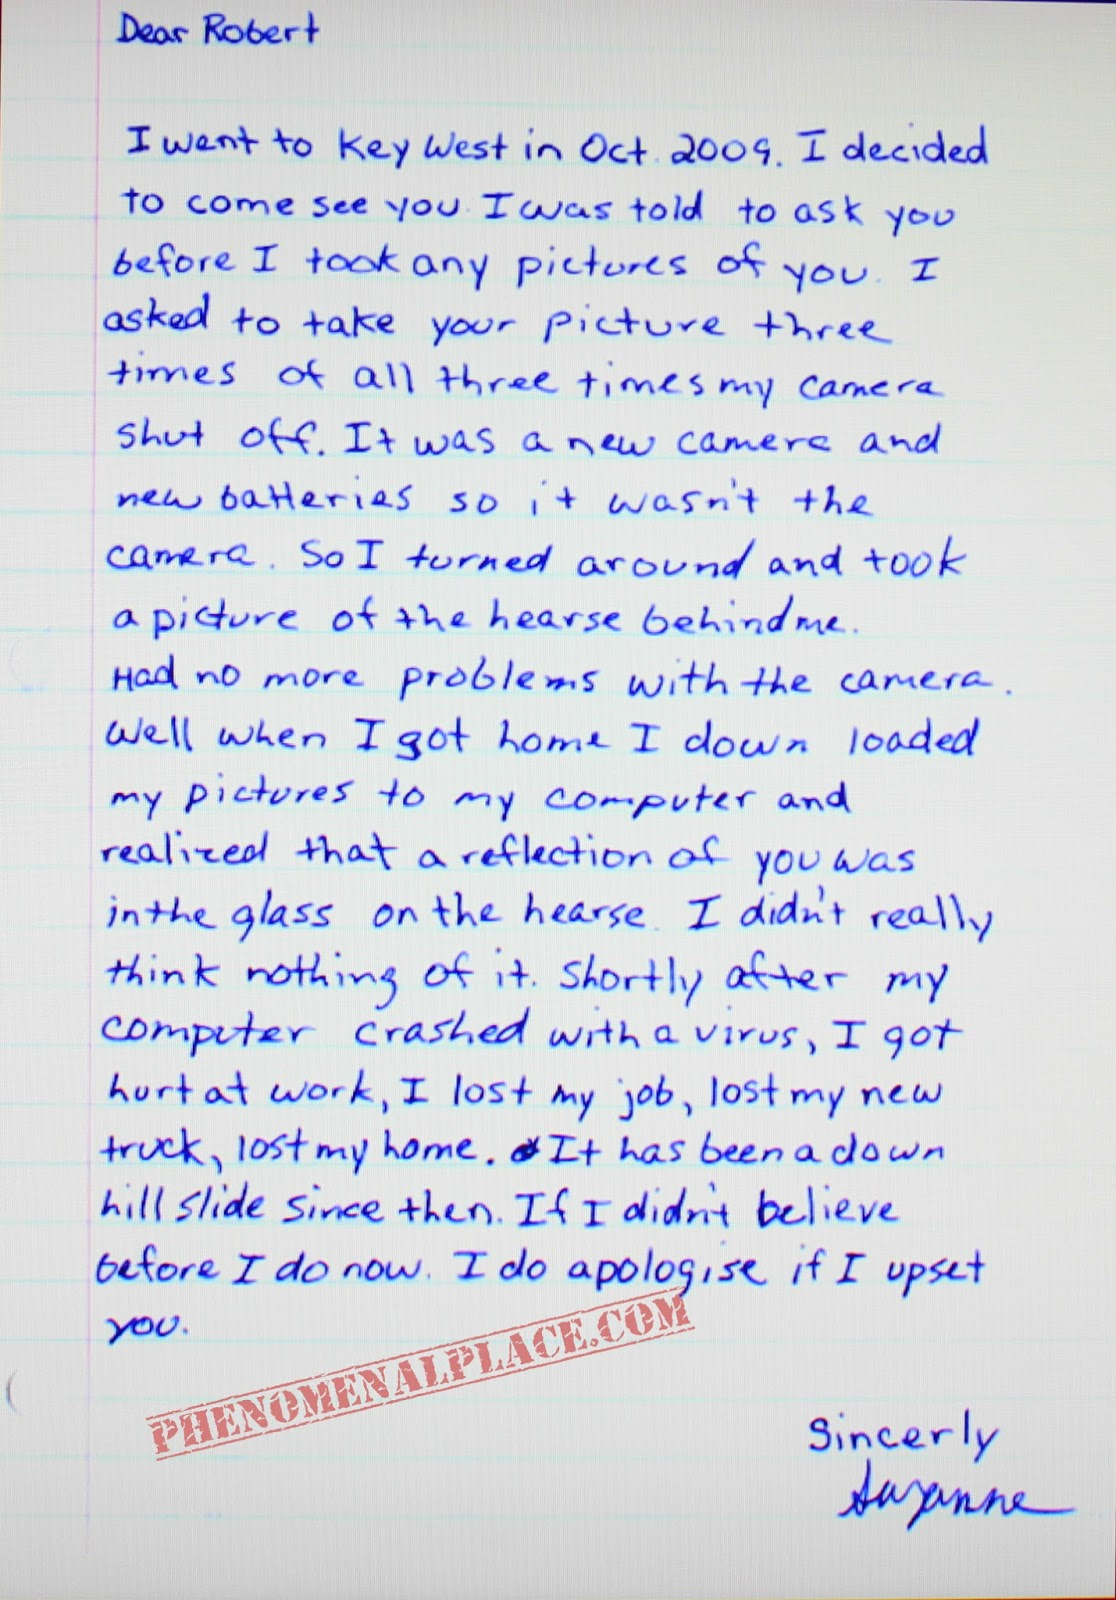 Apology letter for hurting someone